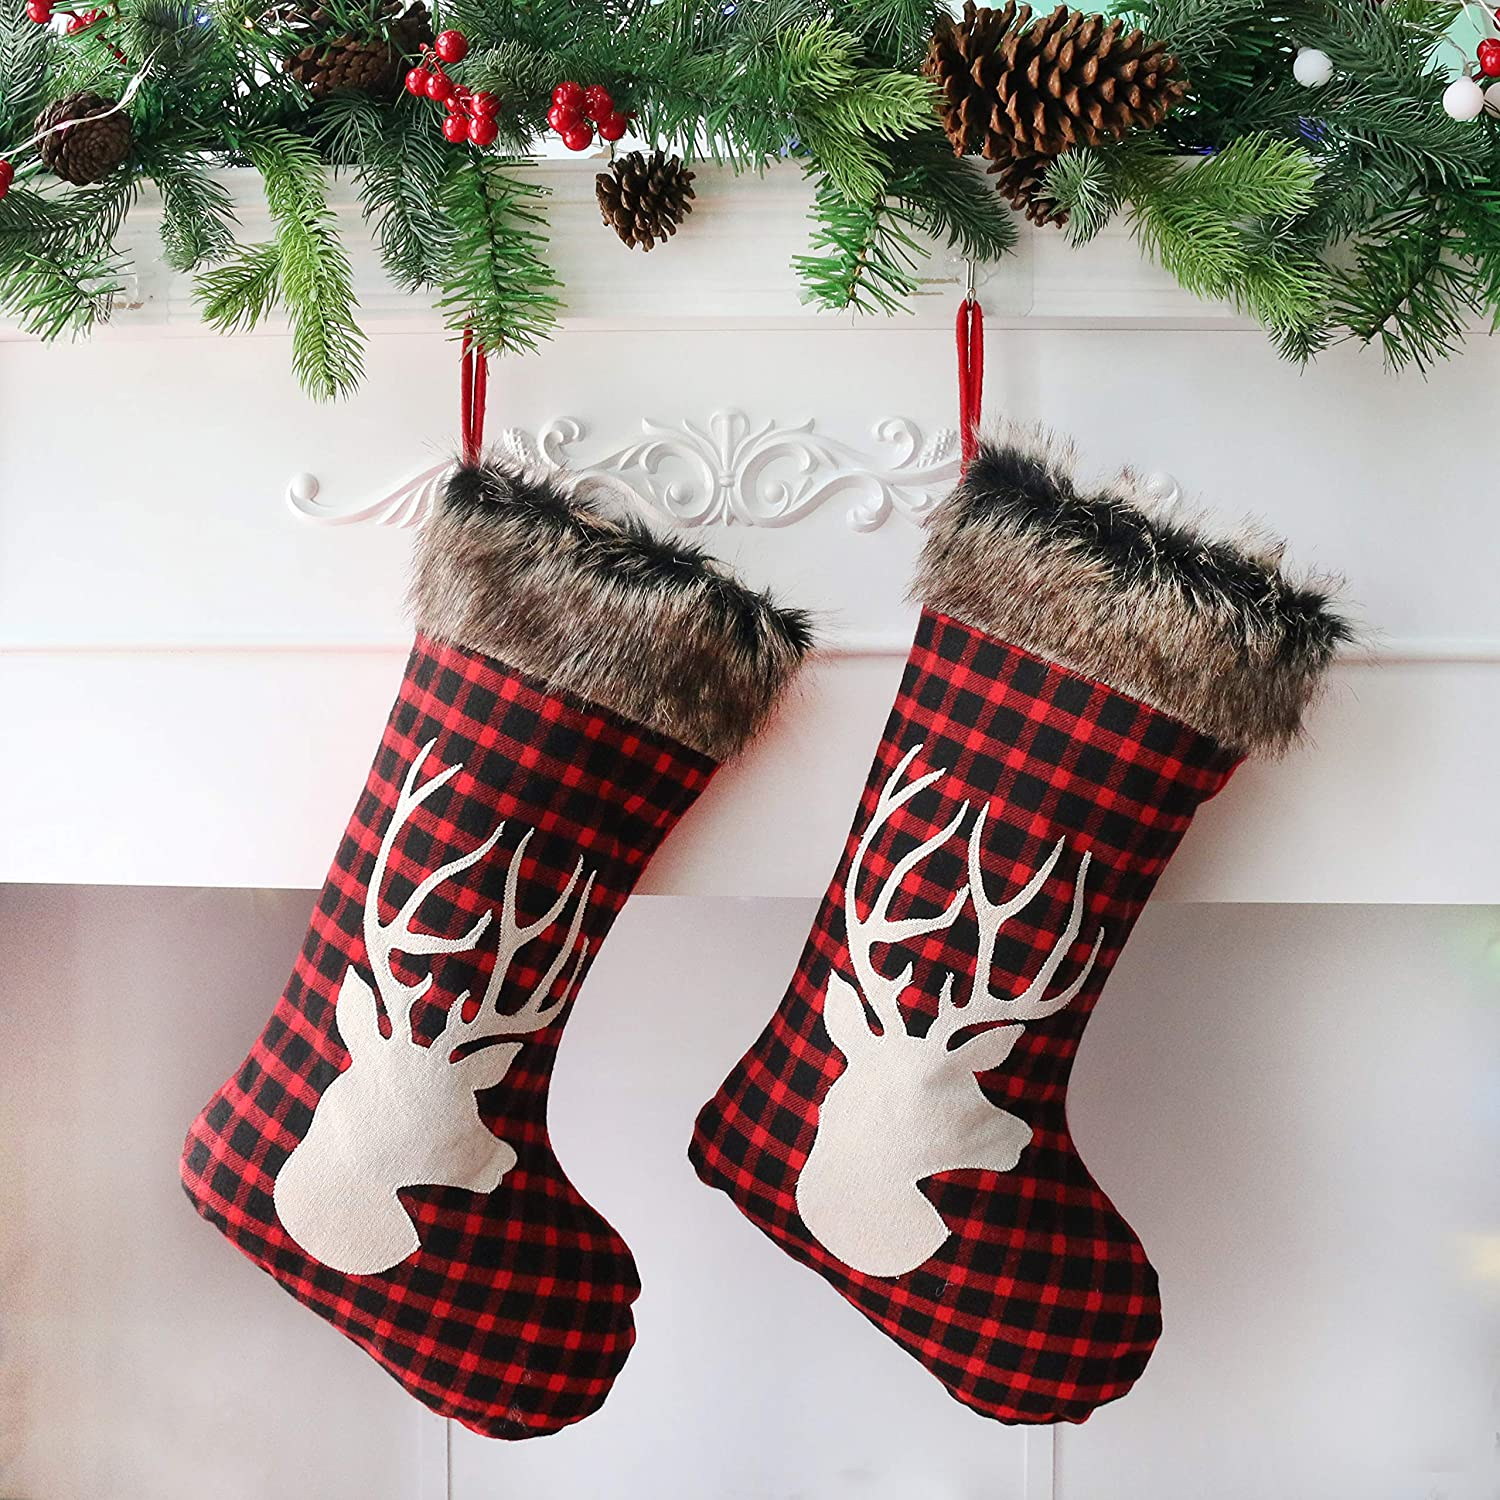 Houwsbaby Spasm price 2 Pcs Christmas Stockings Large Set Many popular brands Holders with Plaid